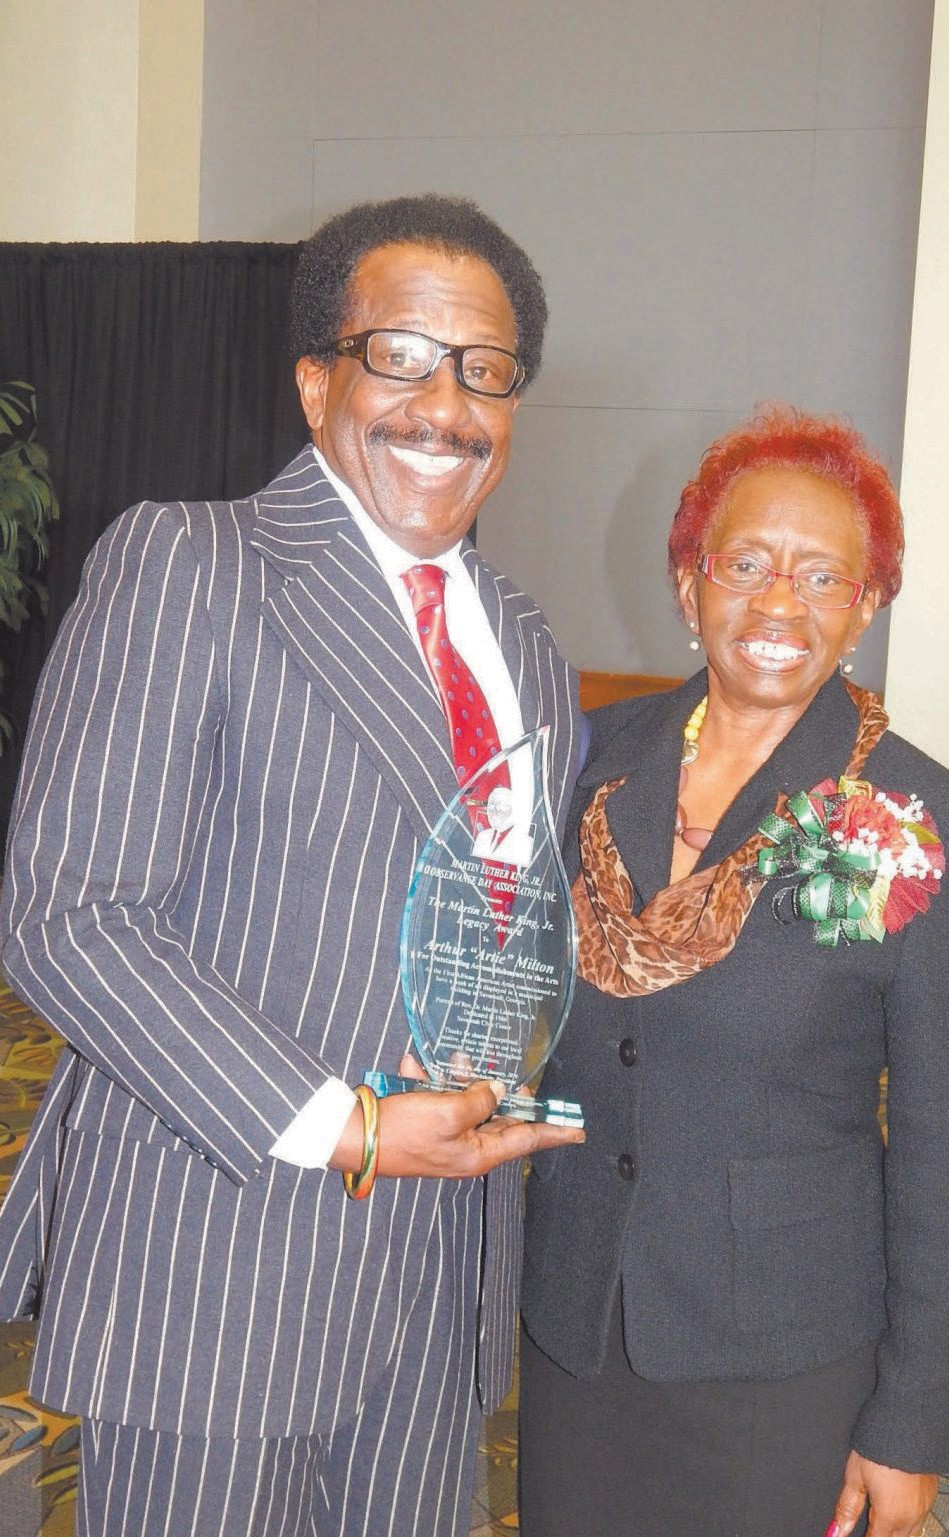 Milton received the MLK Legacy Award in January 2016 at the MLK Observance Day Unity Brunch